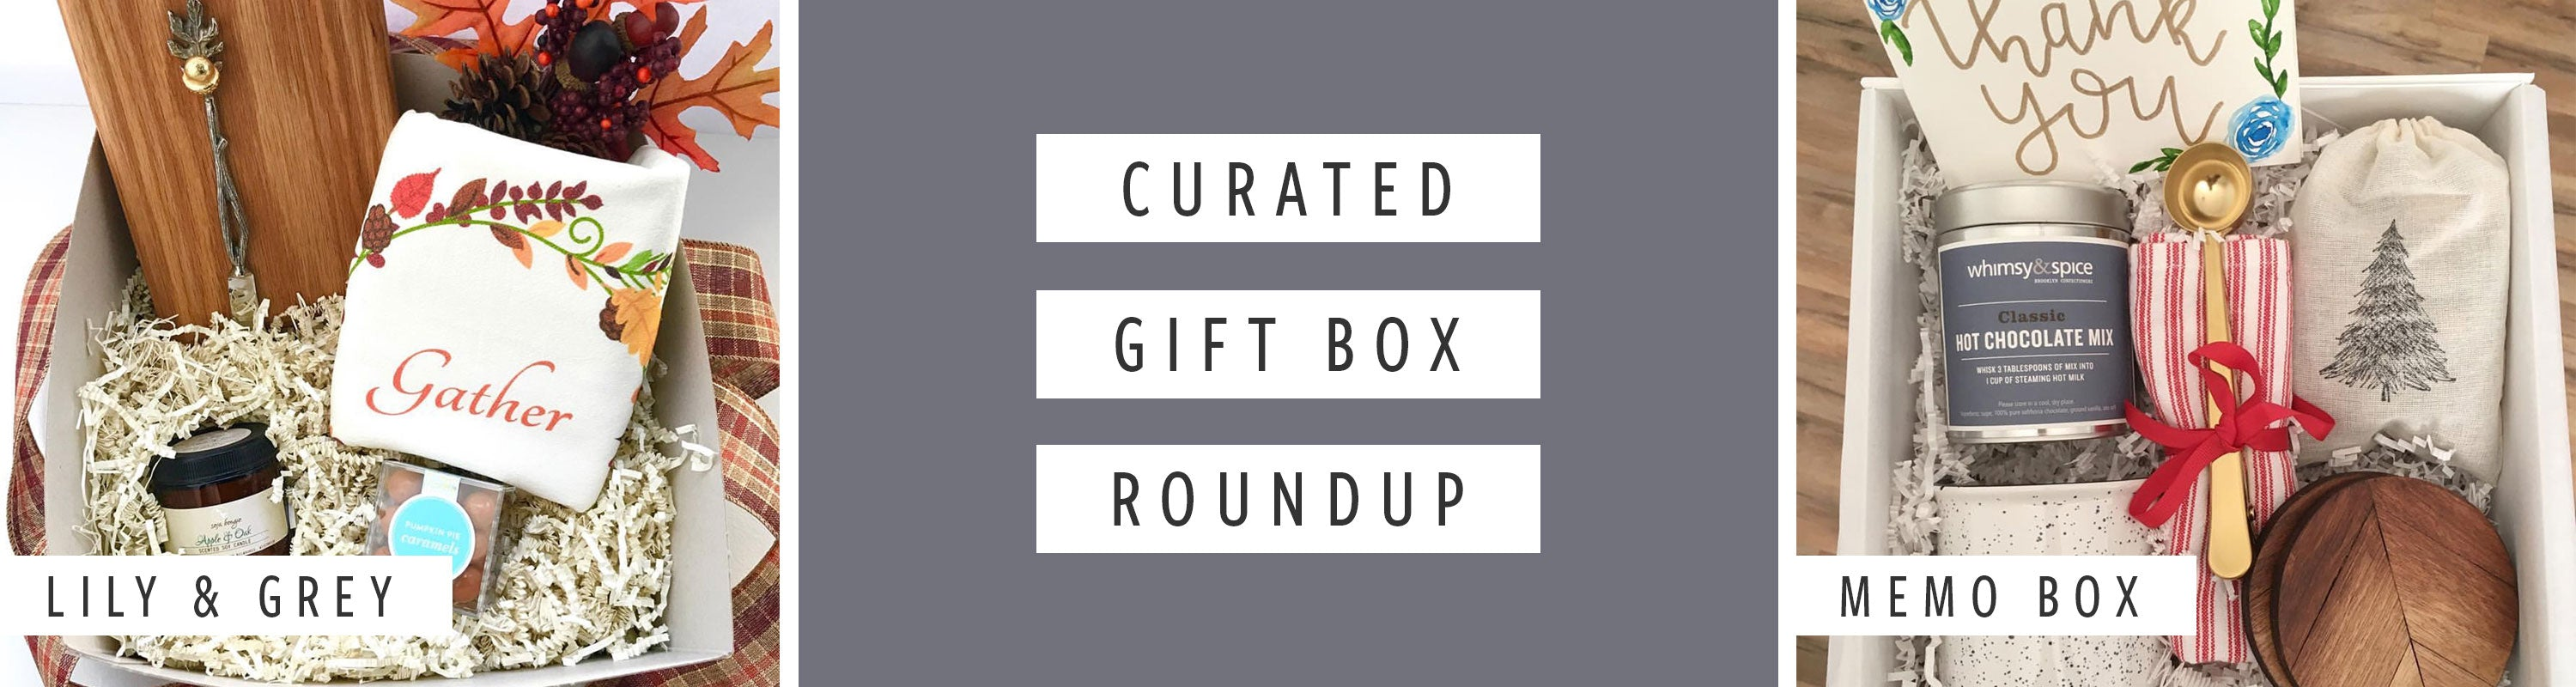 Curated Gift Box Roundup